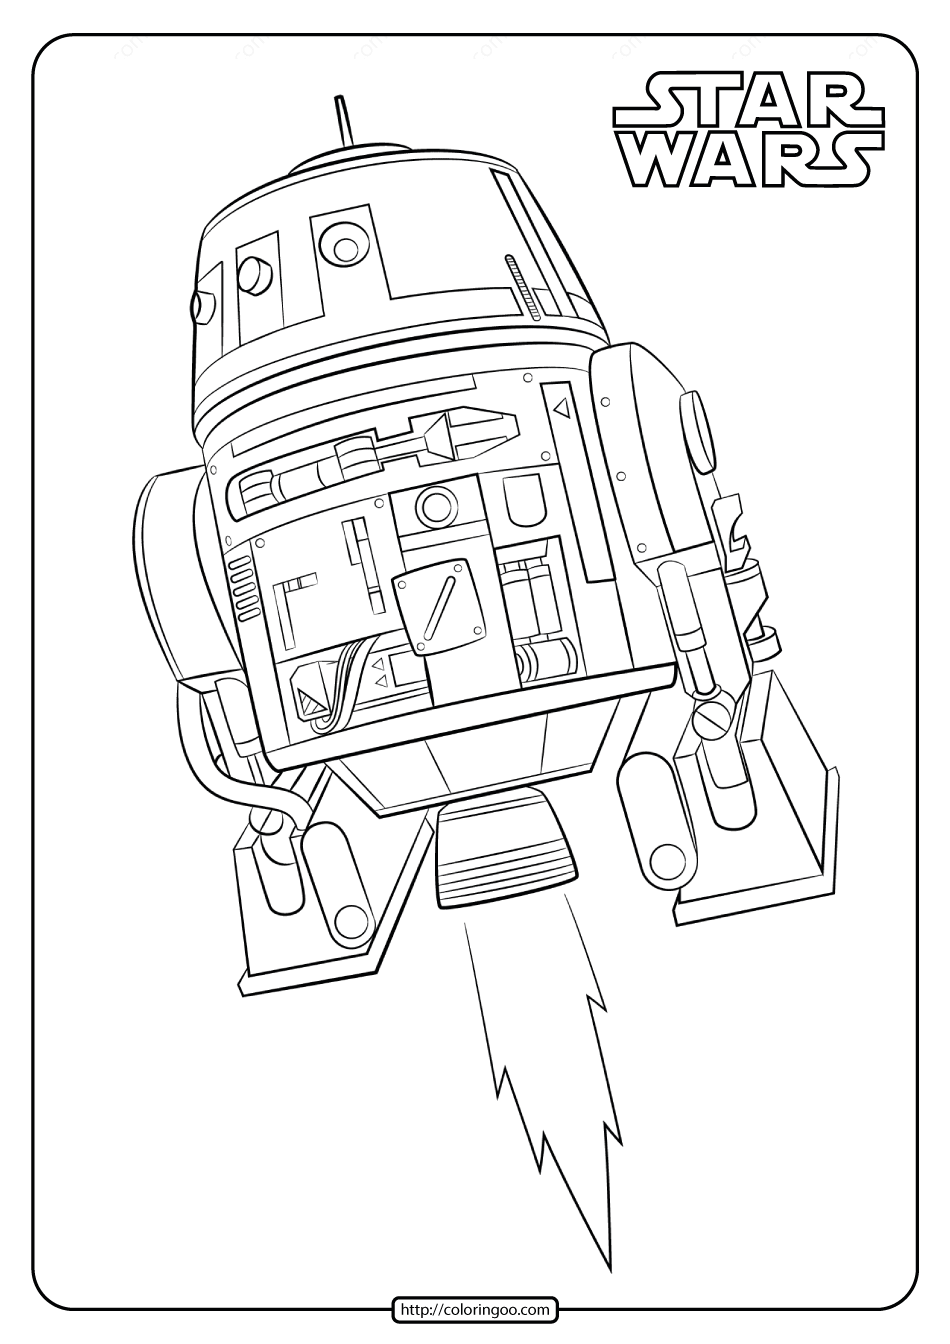 Printable Star Wars R2D2 Coloring Pages